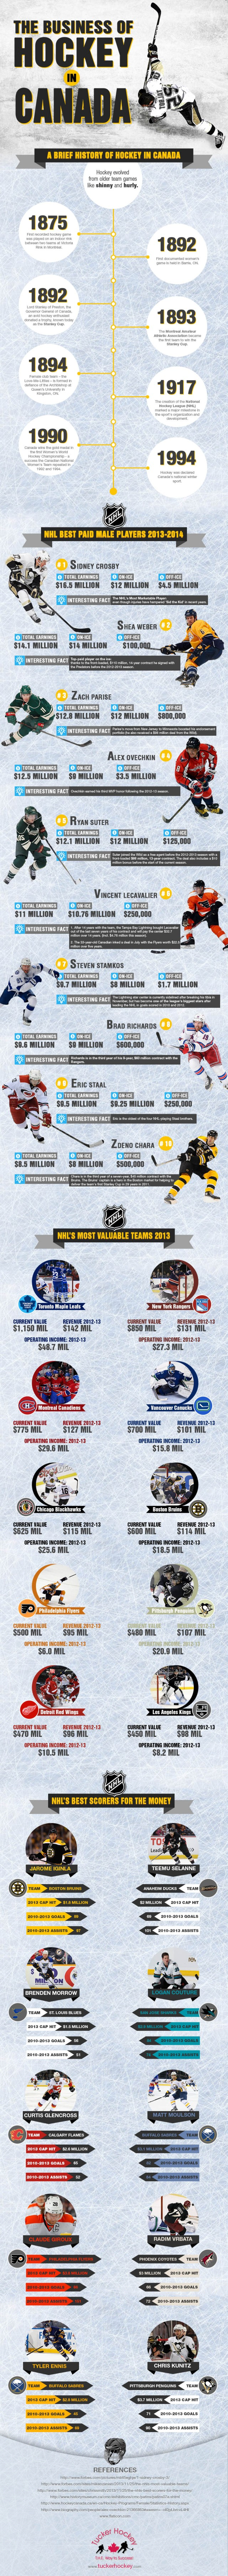 Tucker Hockey Infographic